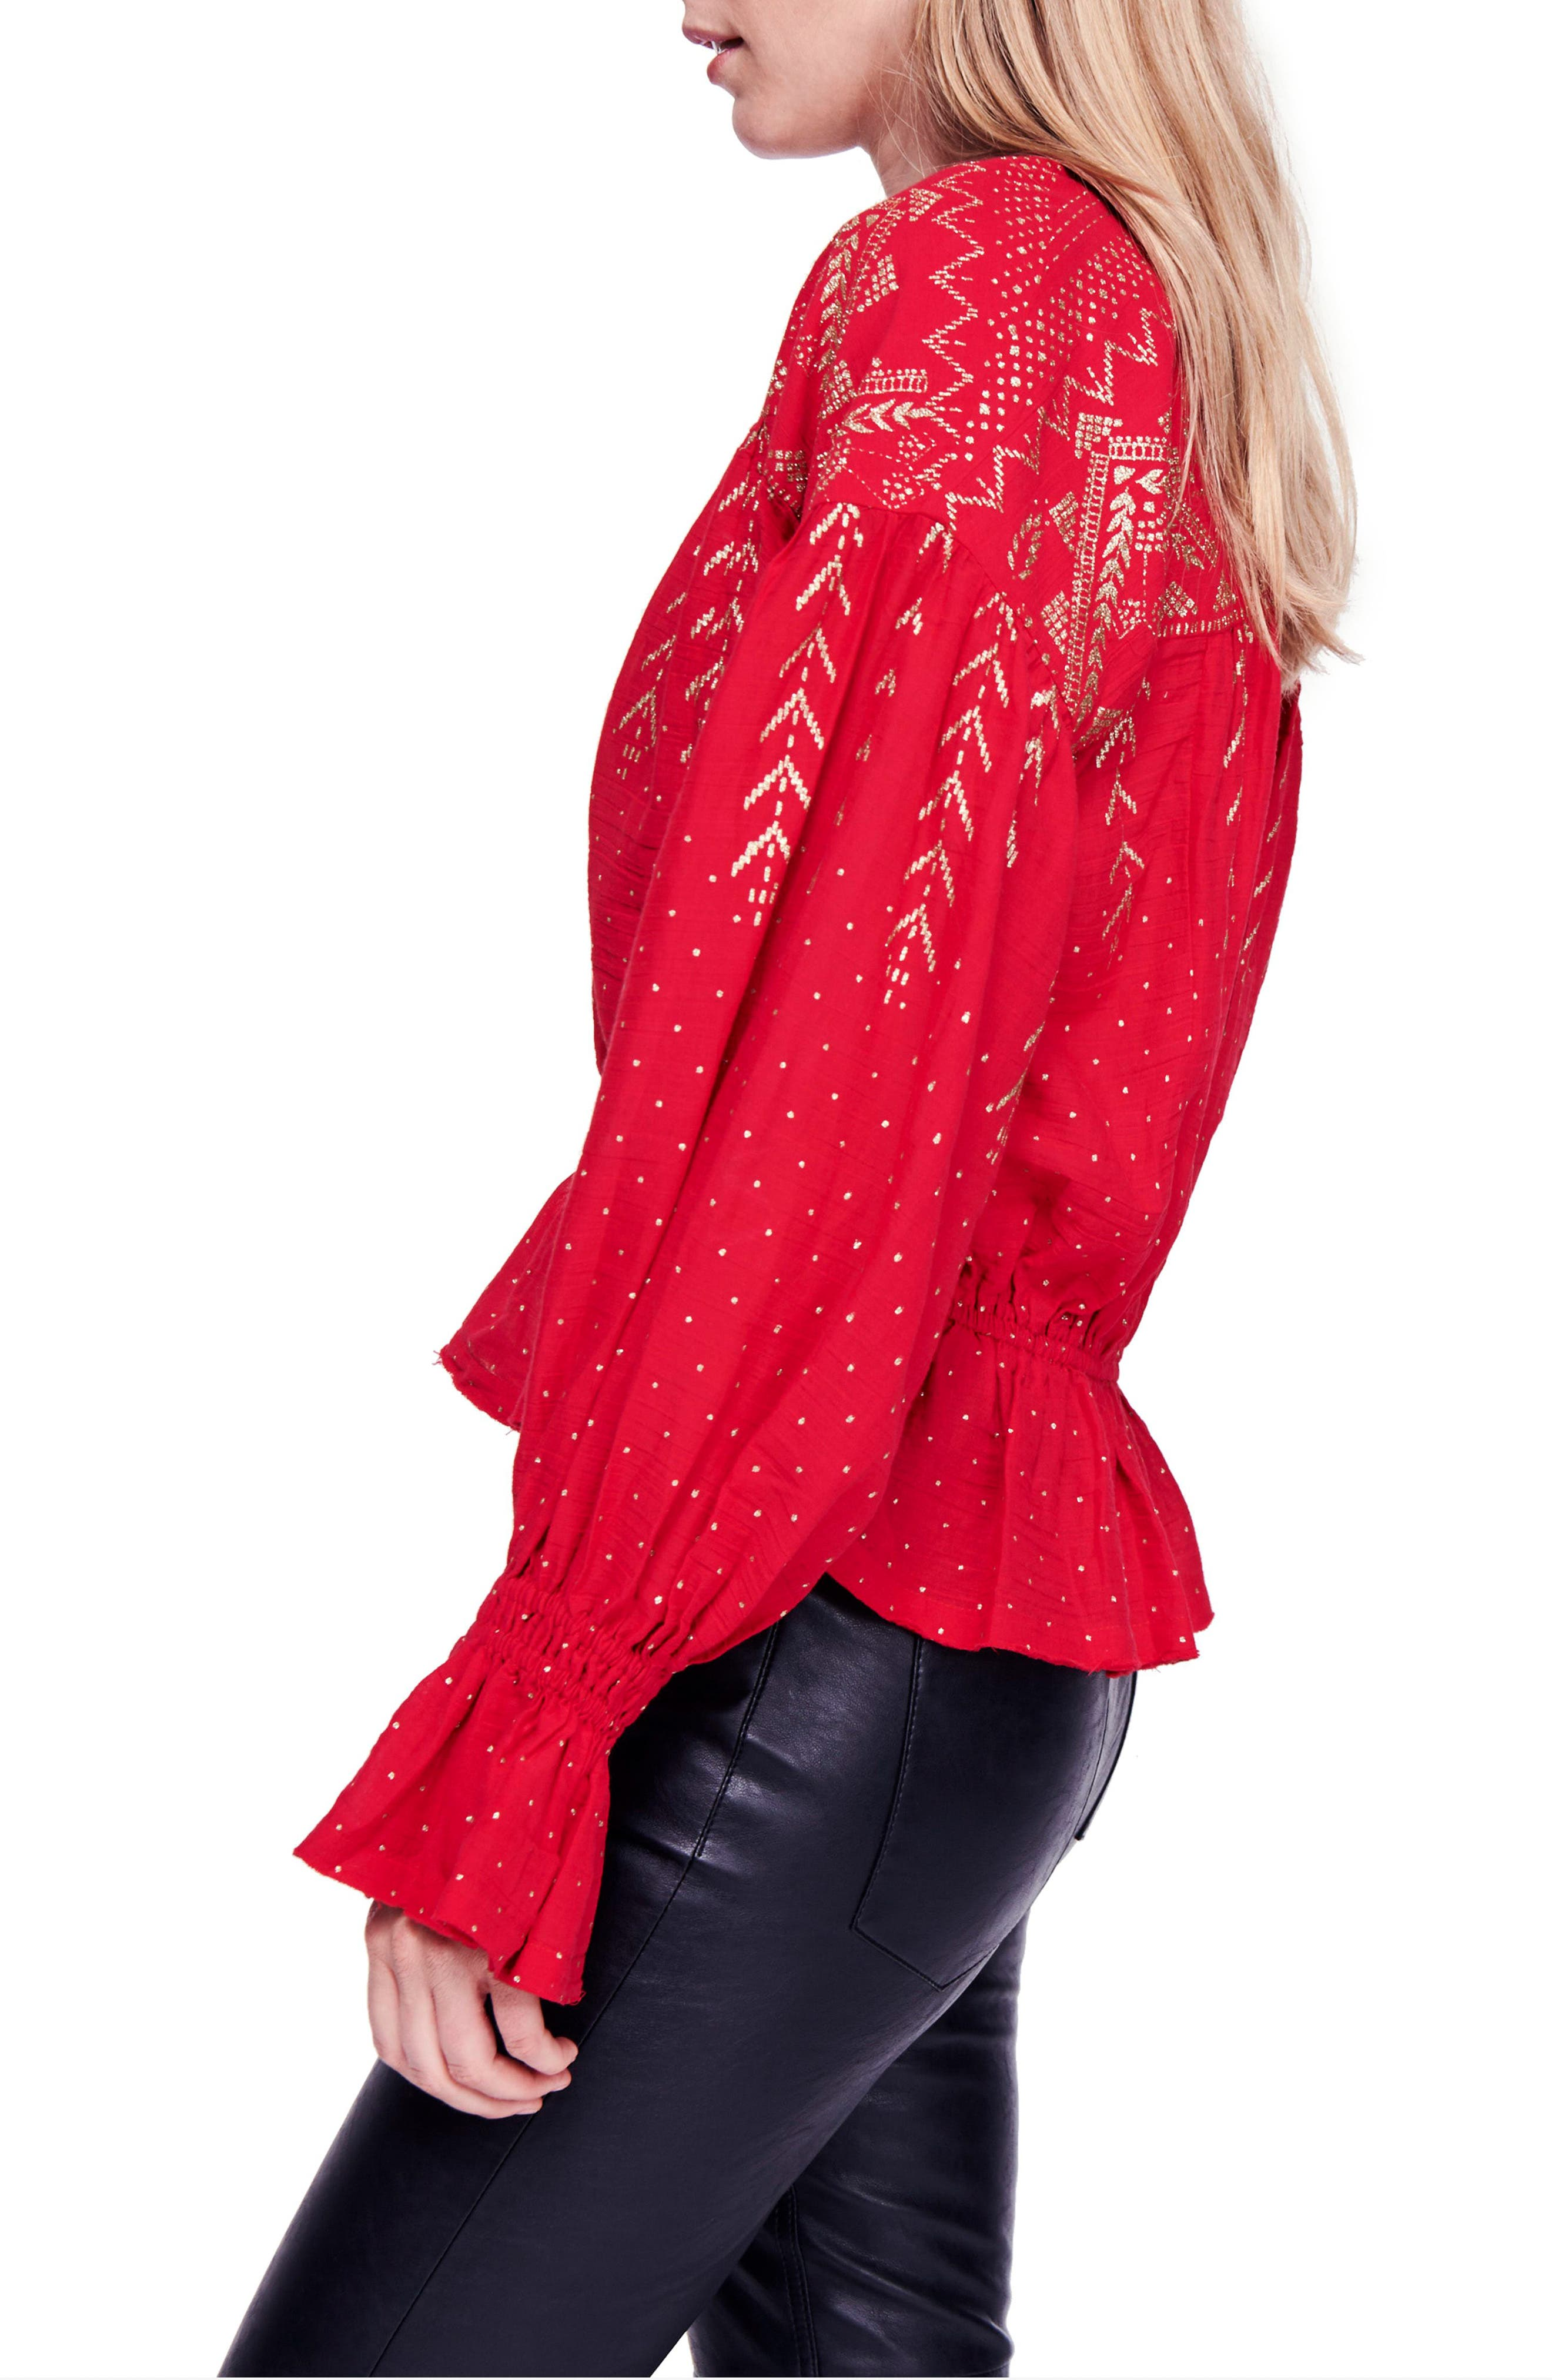 Counting Stars Blouse,                             Alternate thumbnail 3, color,                             RED